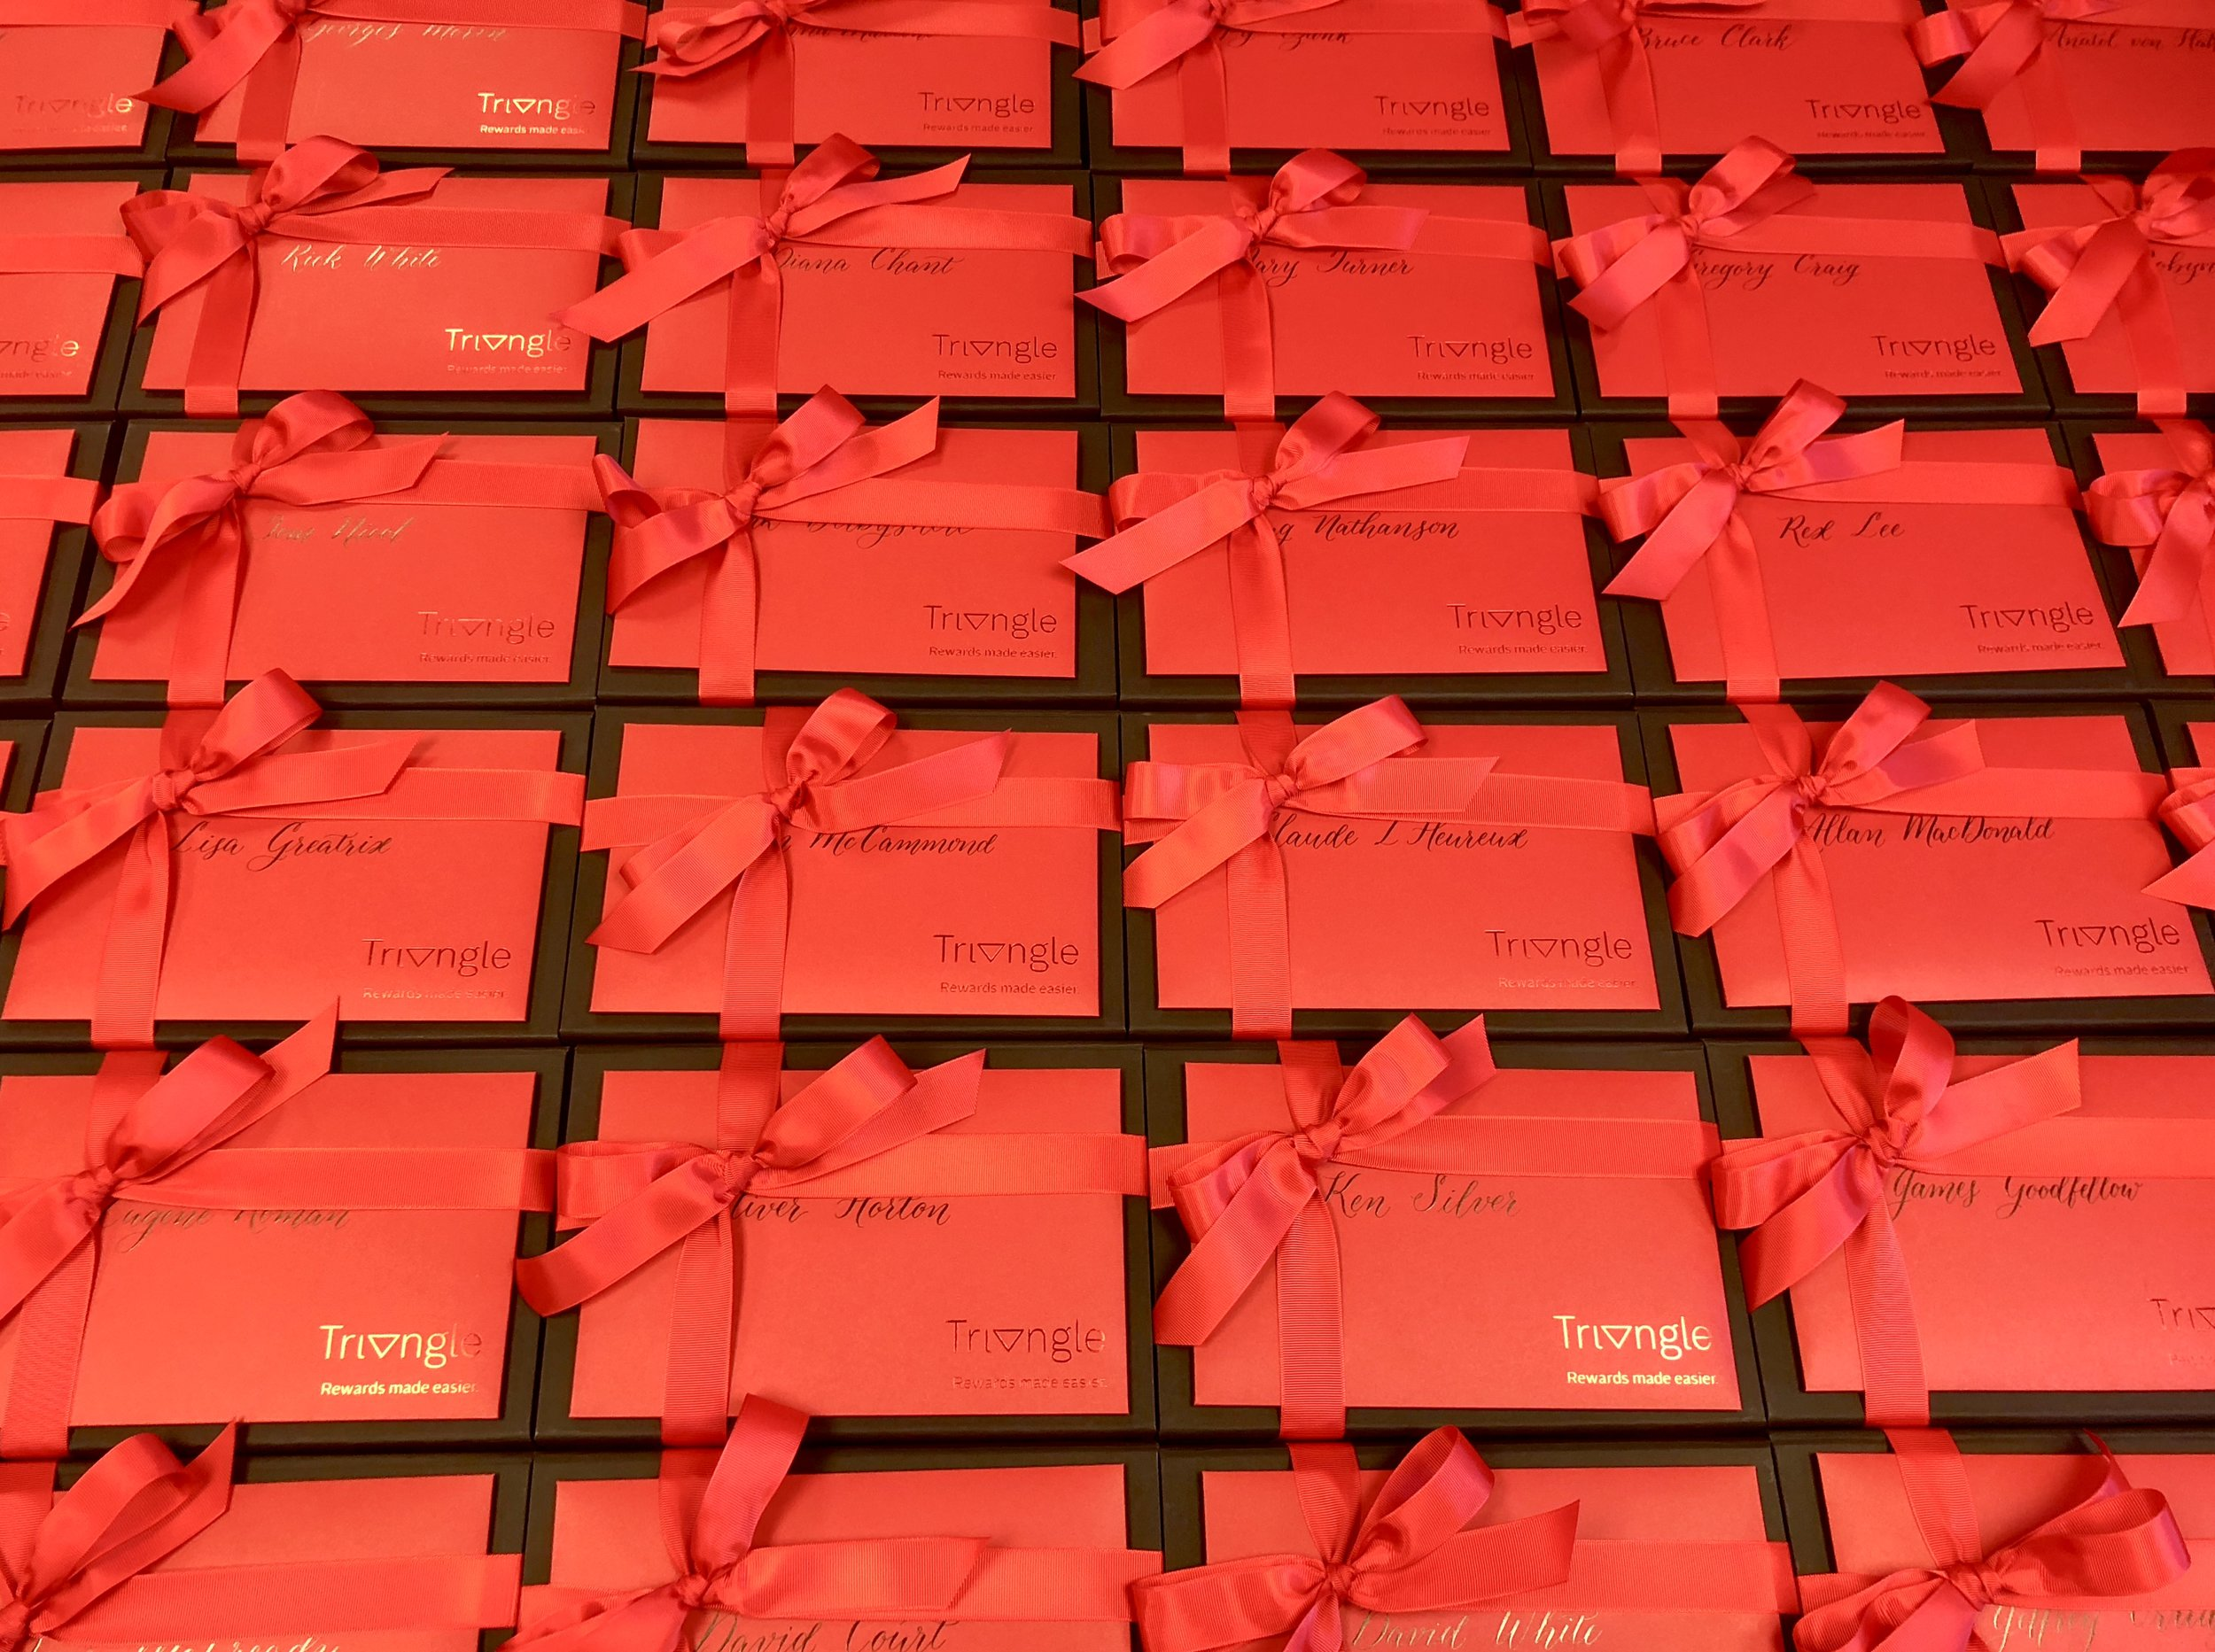 Client: Canadian Tire | Project: Executive gifts for program launch